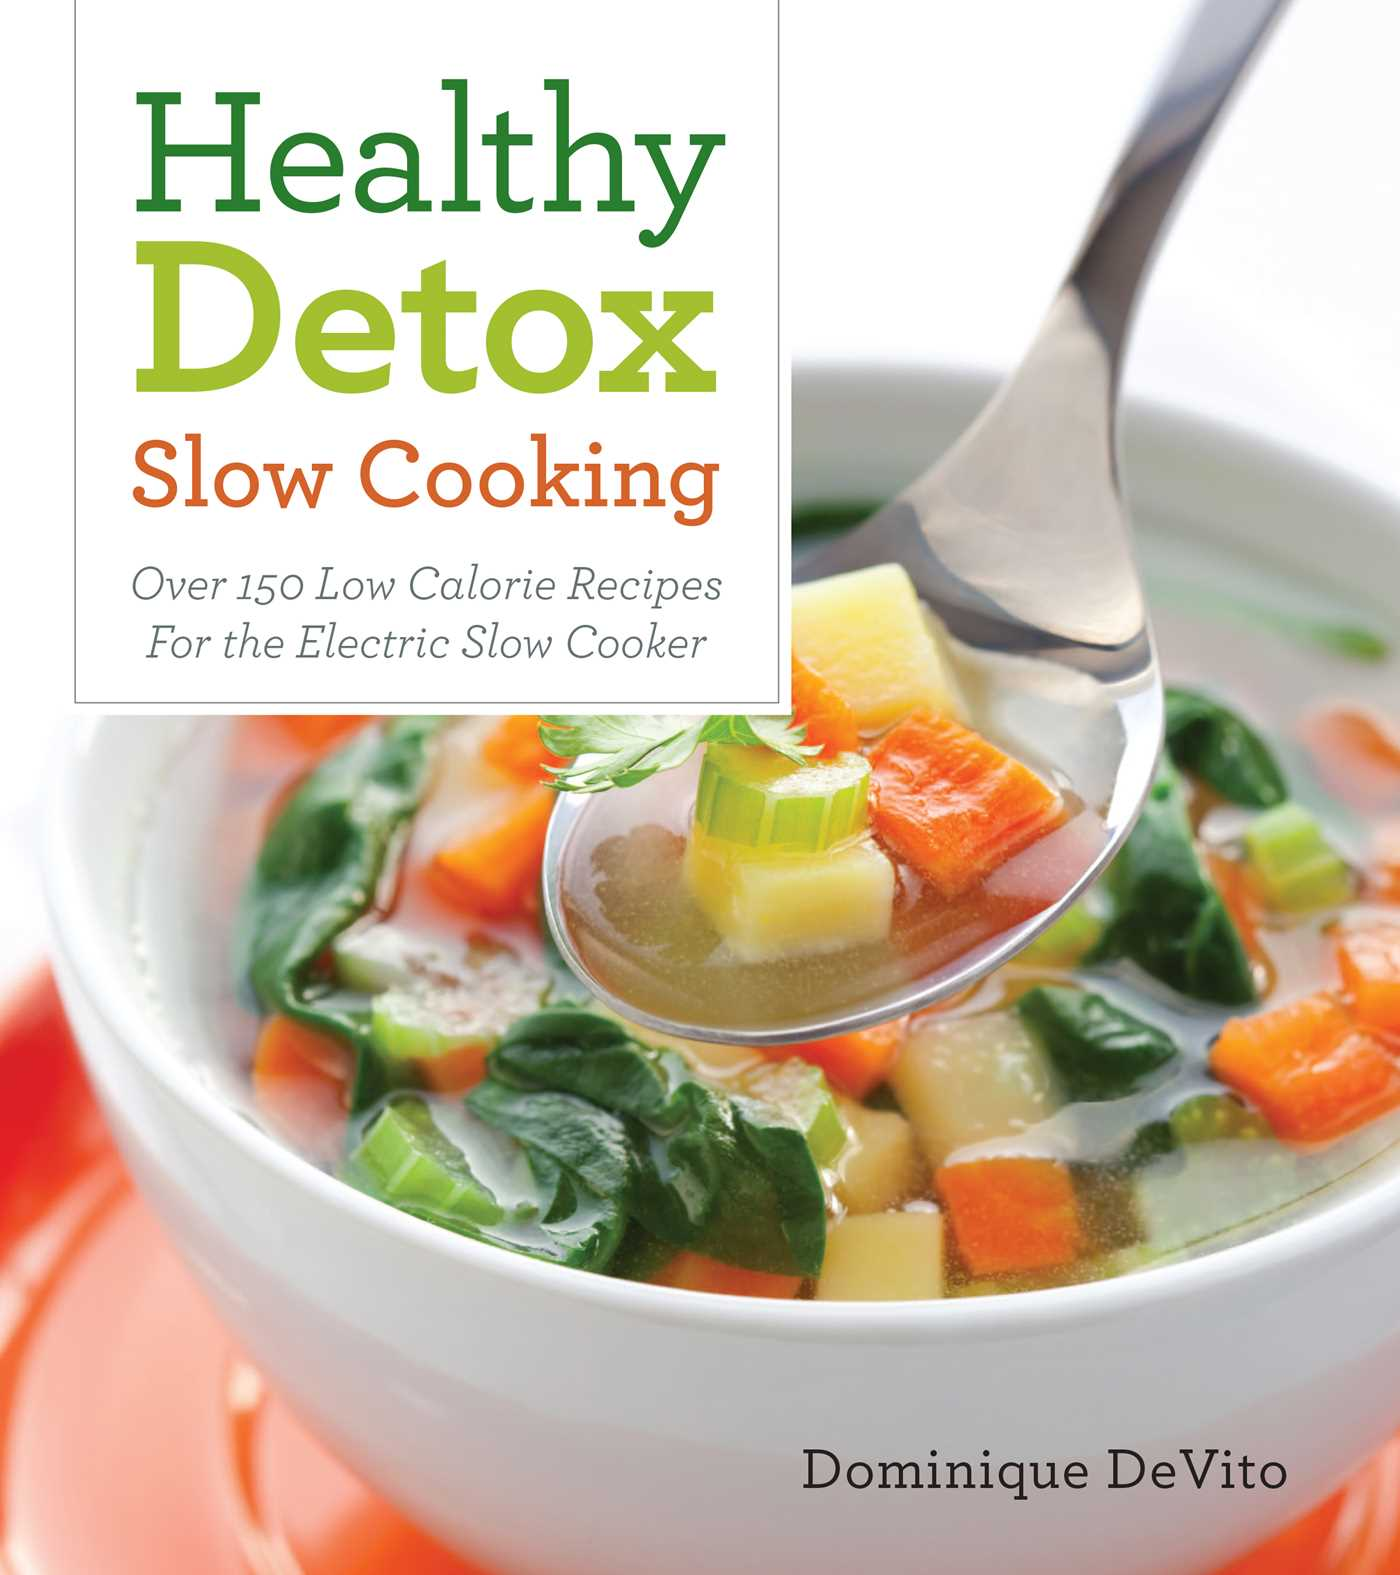 Healthy-detox-slow-cooking-9781604335583_hr